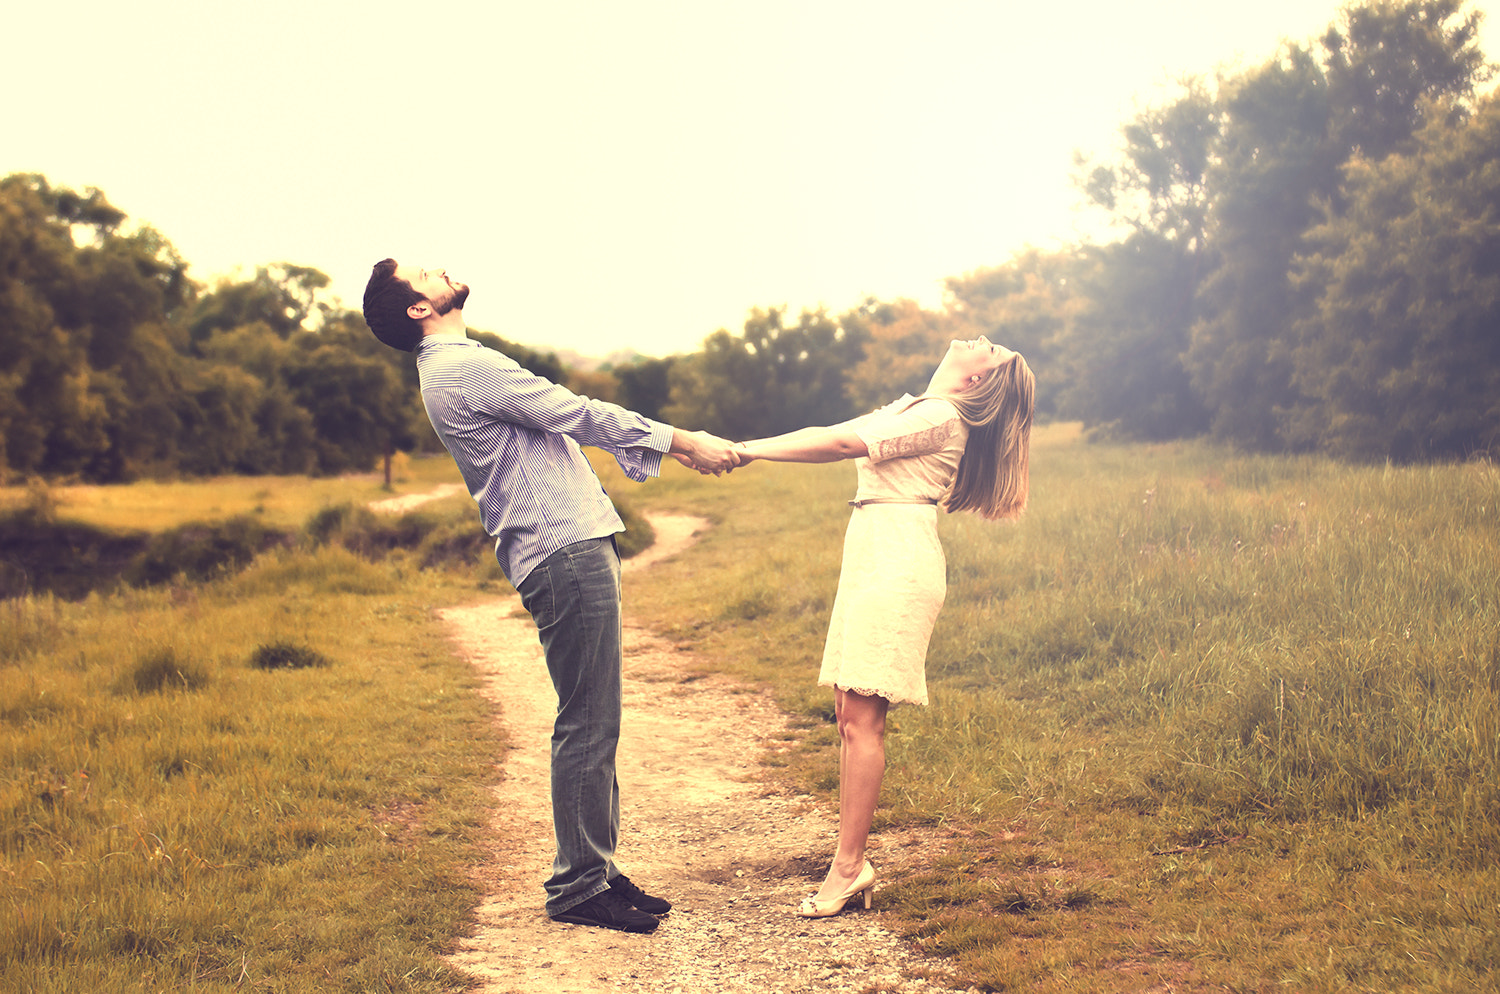 Photograph Engagement Session by Brandon LaJoie on 500px